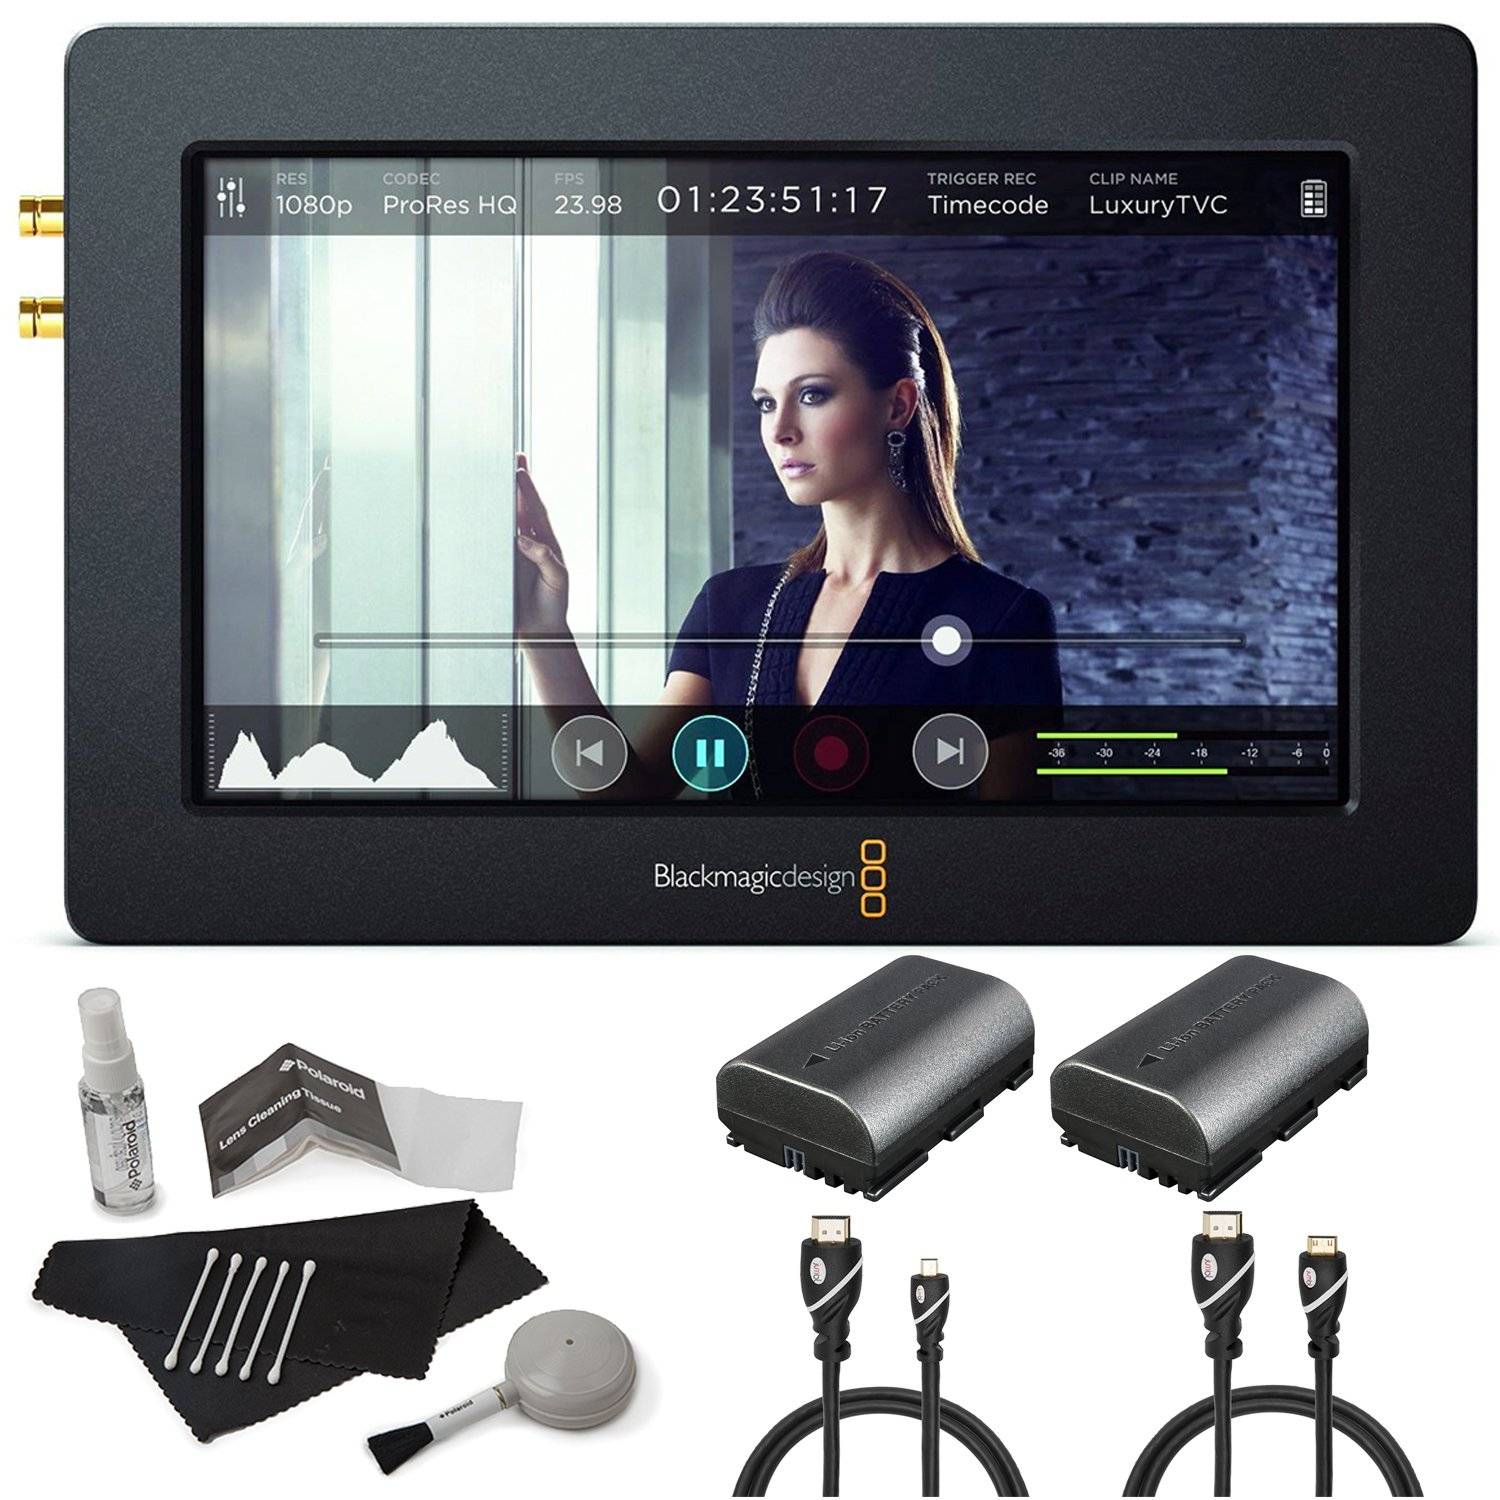 Blackmagic Design Video Assist with HDMI 6G-SDI Recorder 5'' Monitor 1920 x 1080 Display, 2 Batteries, Jumbl HDMI-A to Mini HDMI, Jumbl High-Speed HDMI to Micro HDMI, Cleaning Kit by Calumet